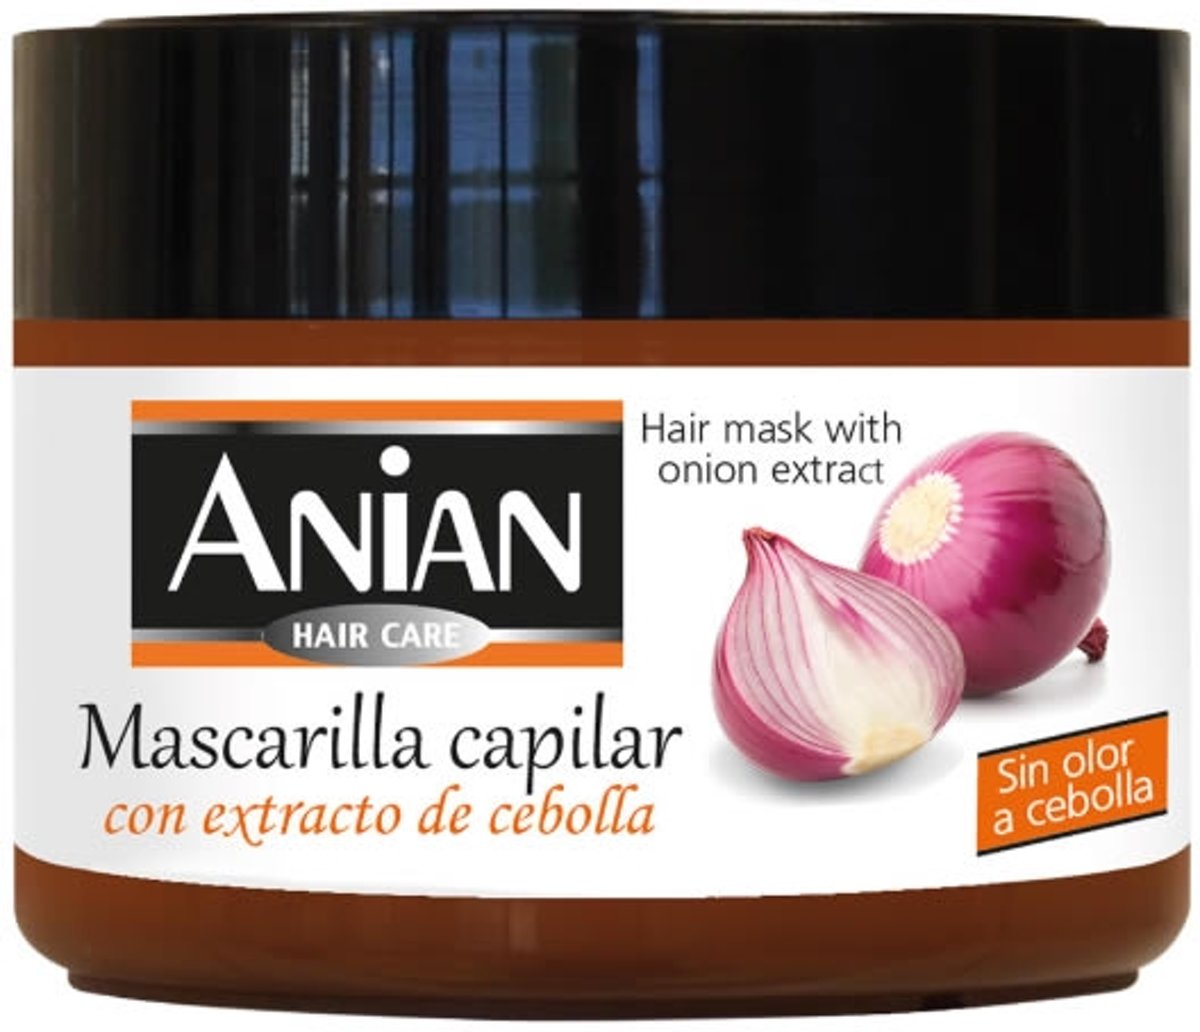 Anian Onion Anti Oxidant & Stimulating Effect Mask 400ml Haarmasker